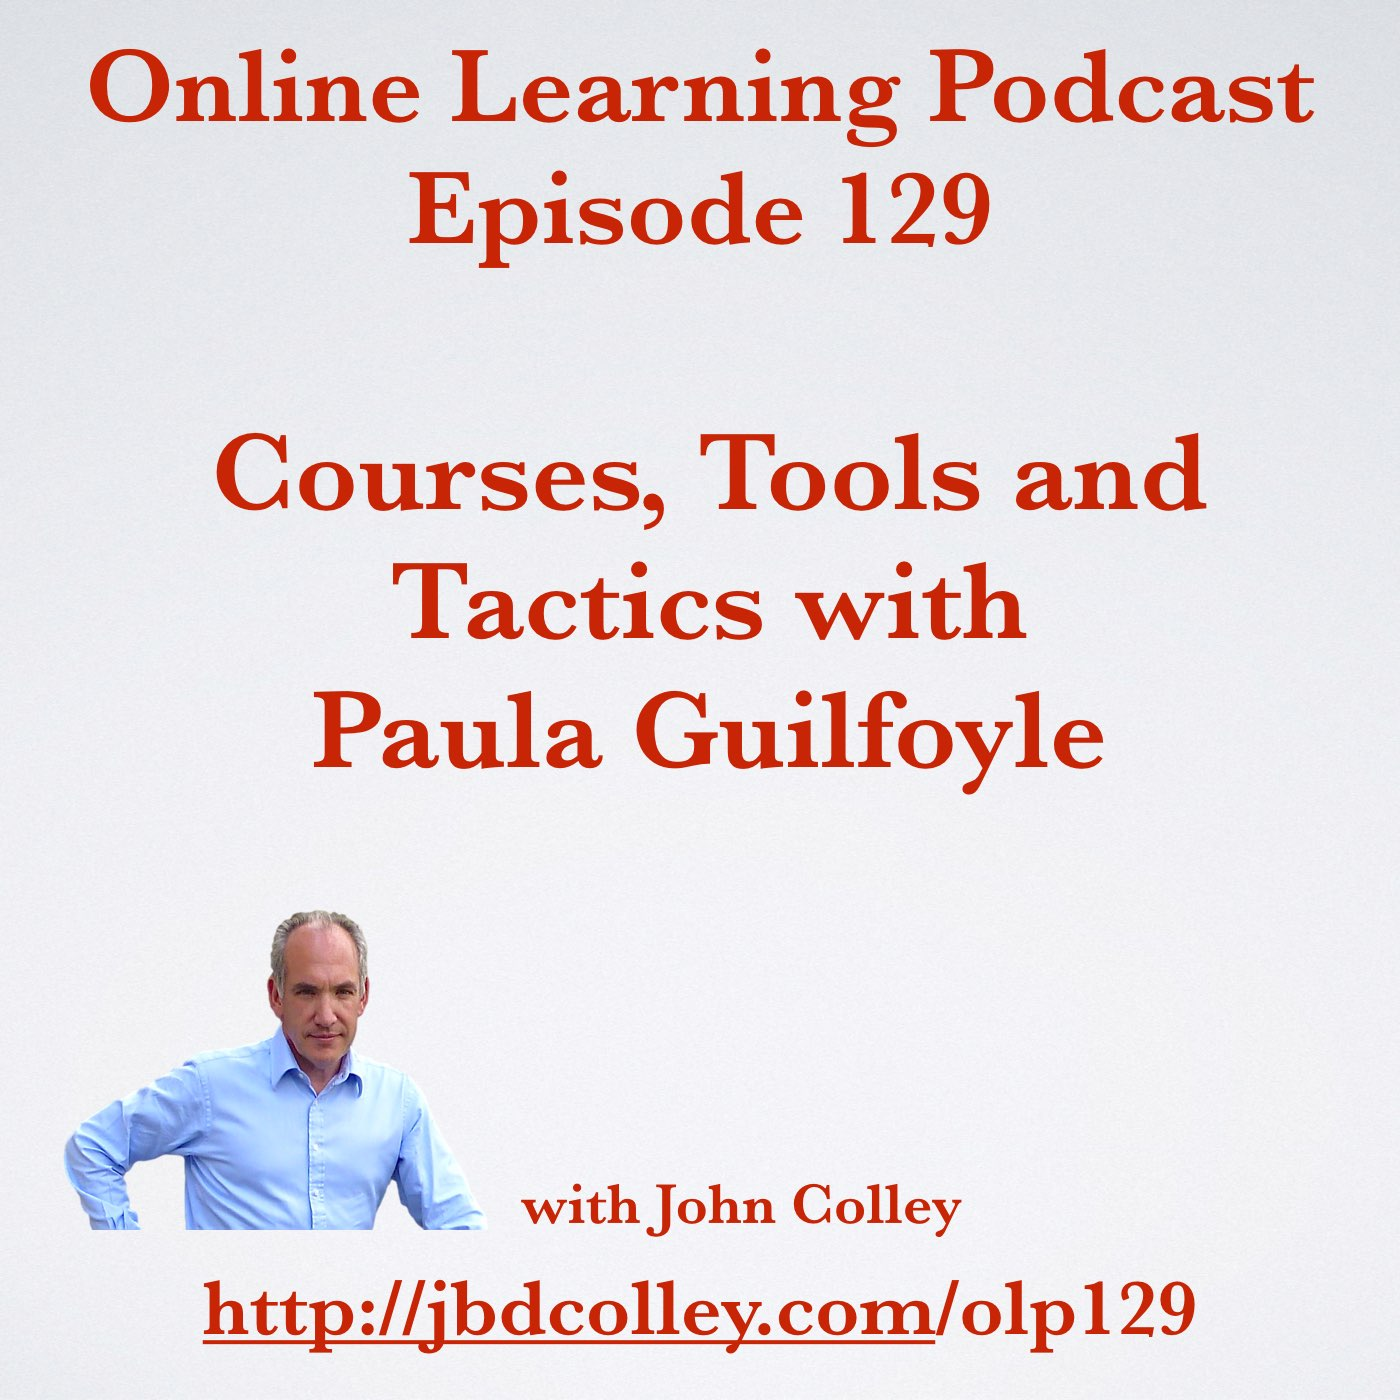 OLP129 Courses, Tools and Tactics with Paula Guilfoyle